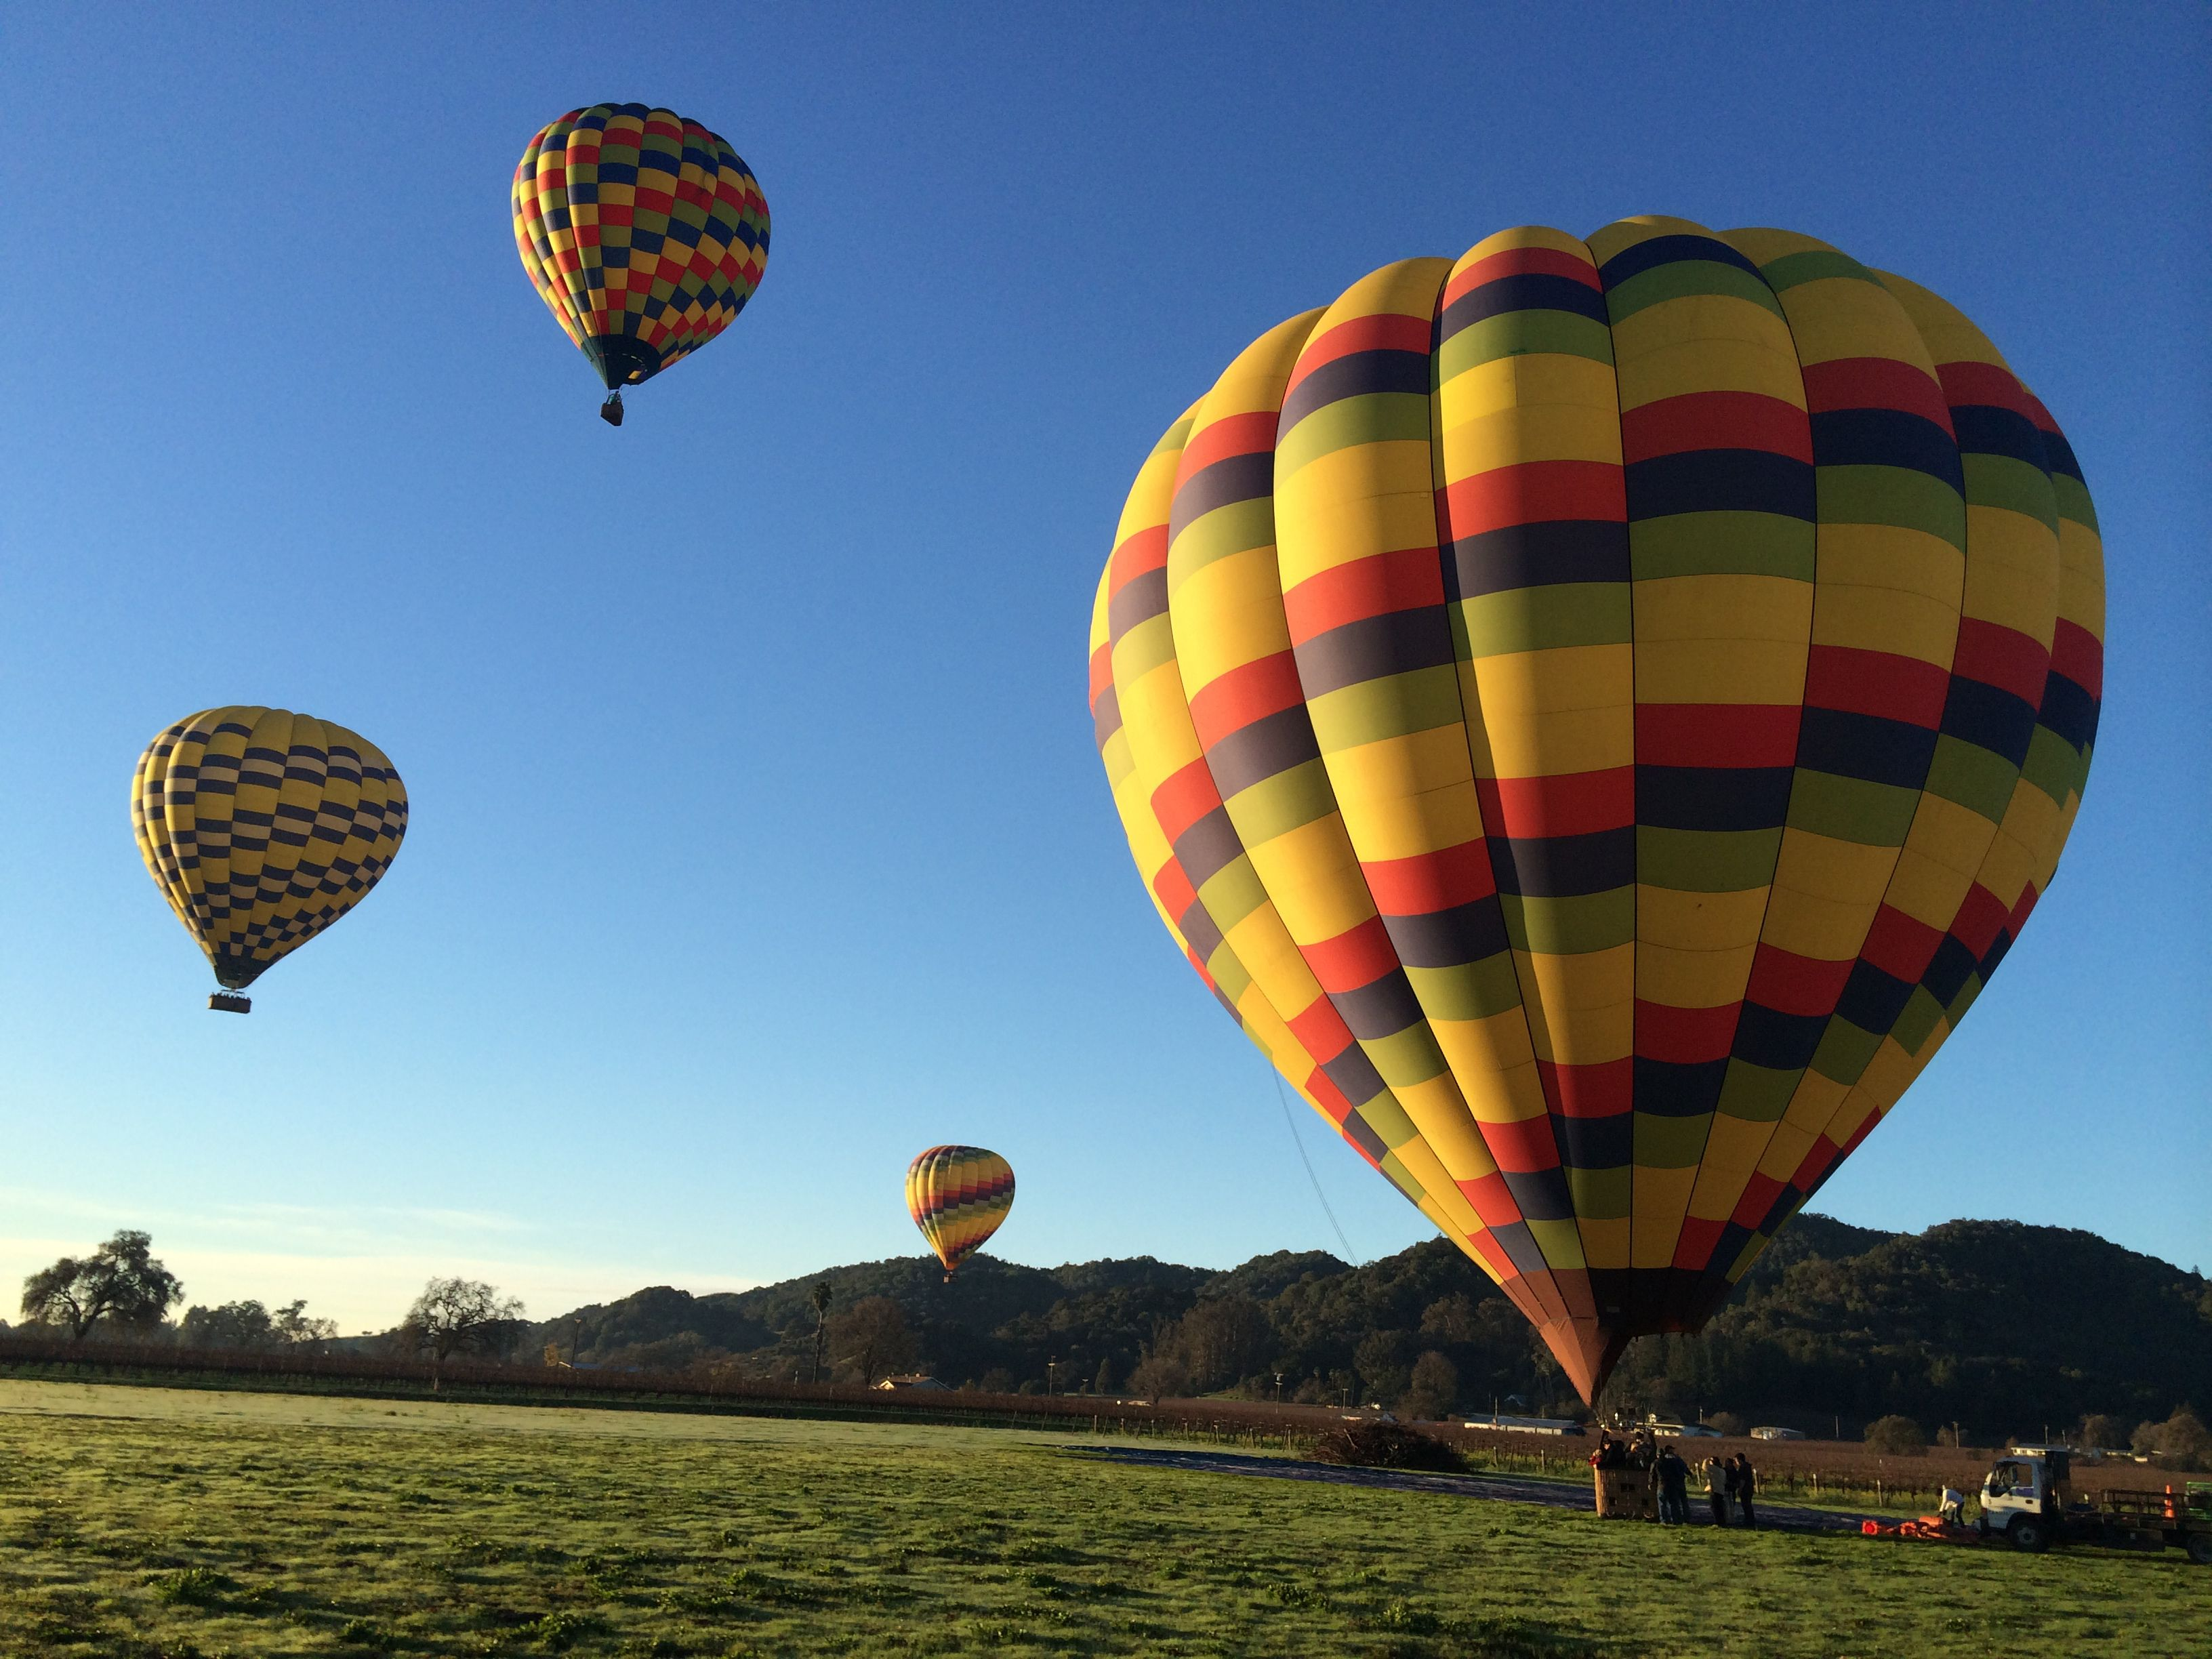 Balloons Above The Vally offers best deals for cheap hot